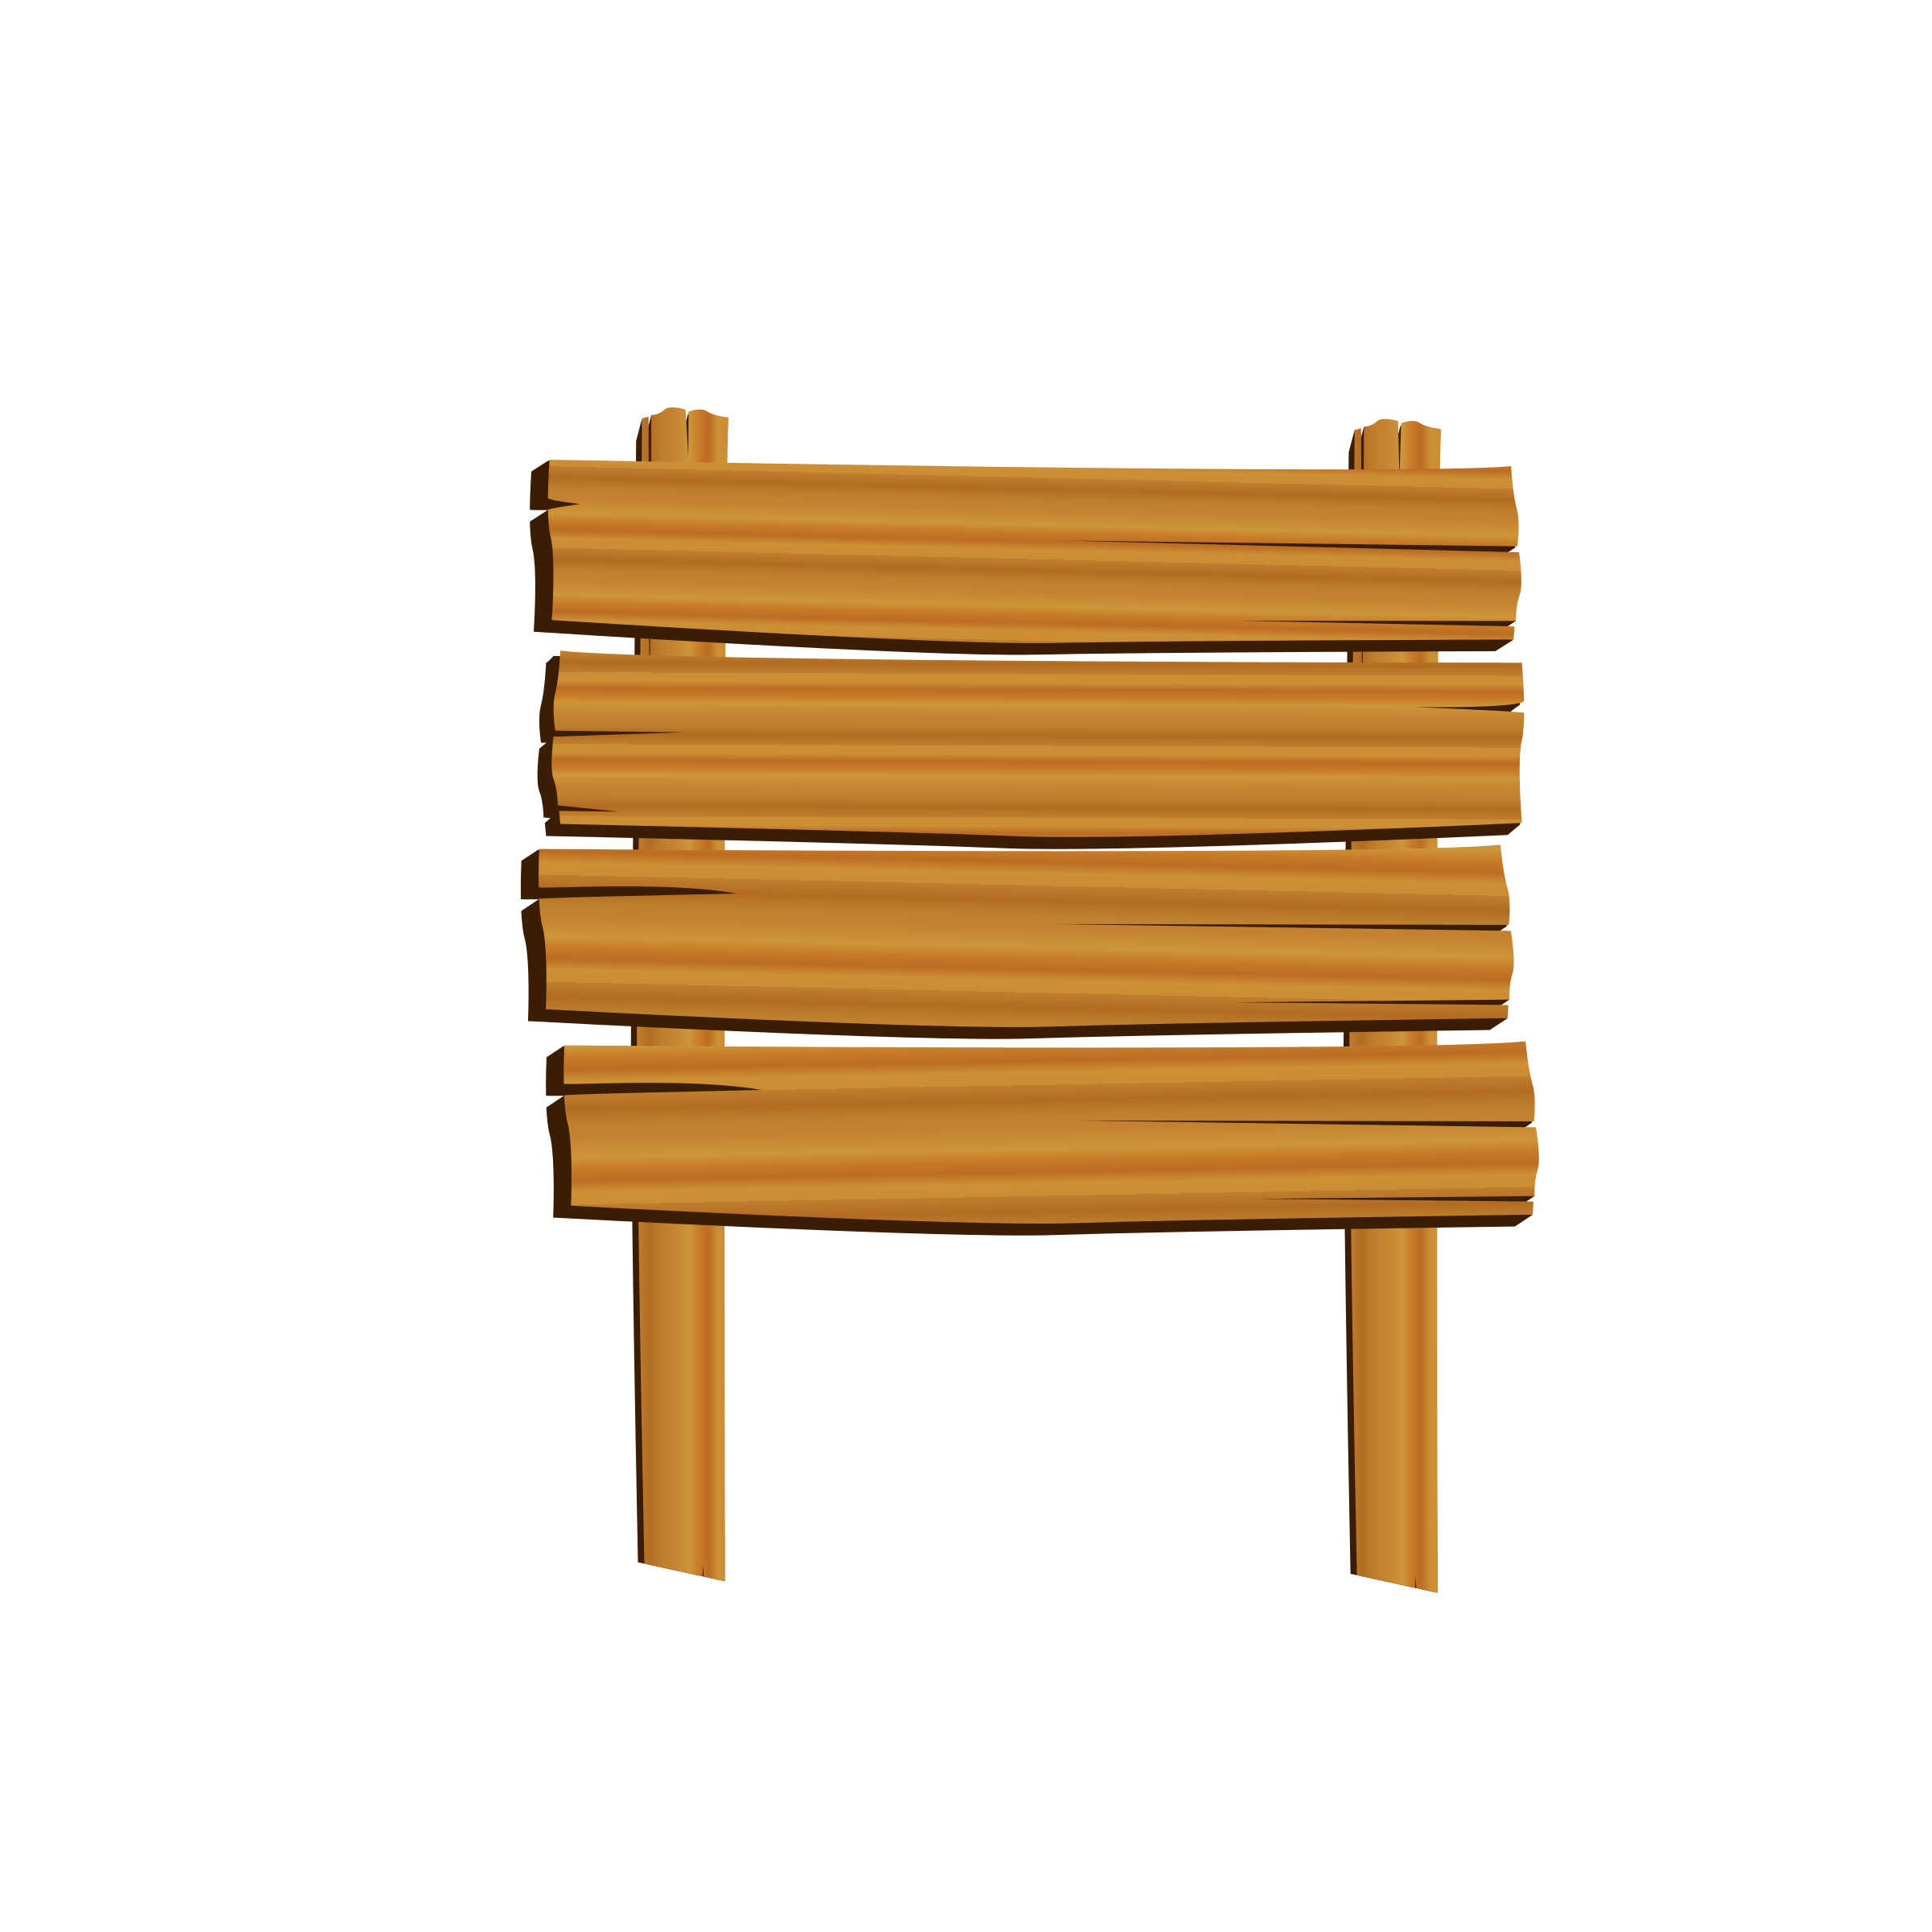 Clipart table meja. Free wood furniture cliparts